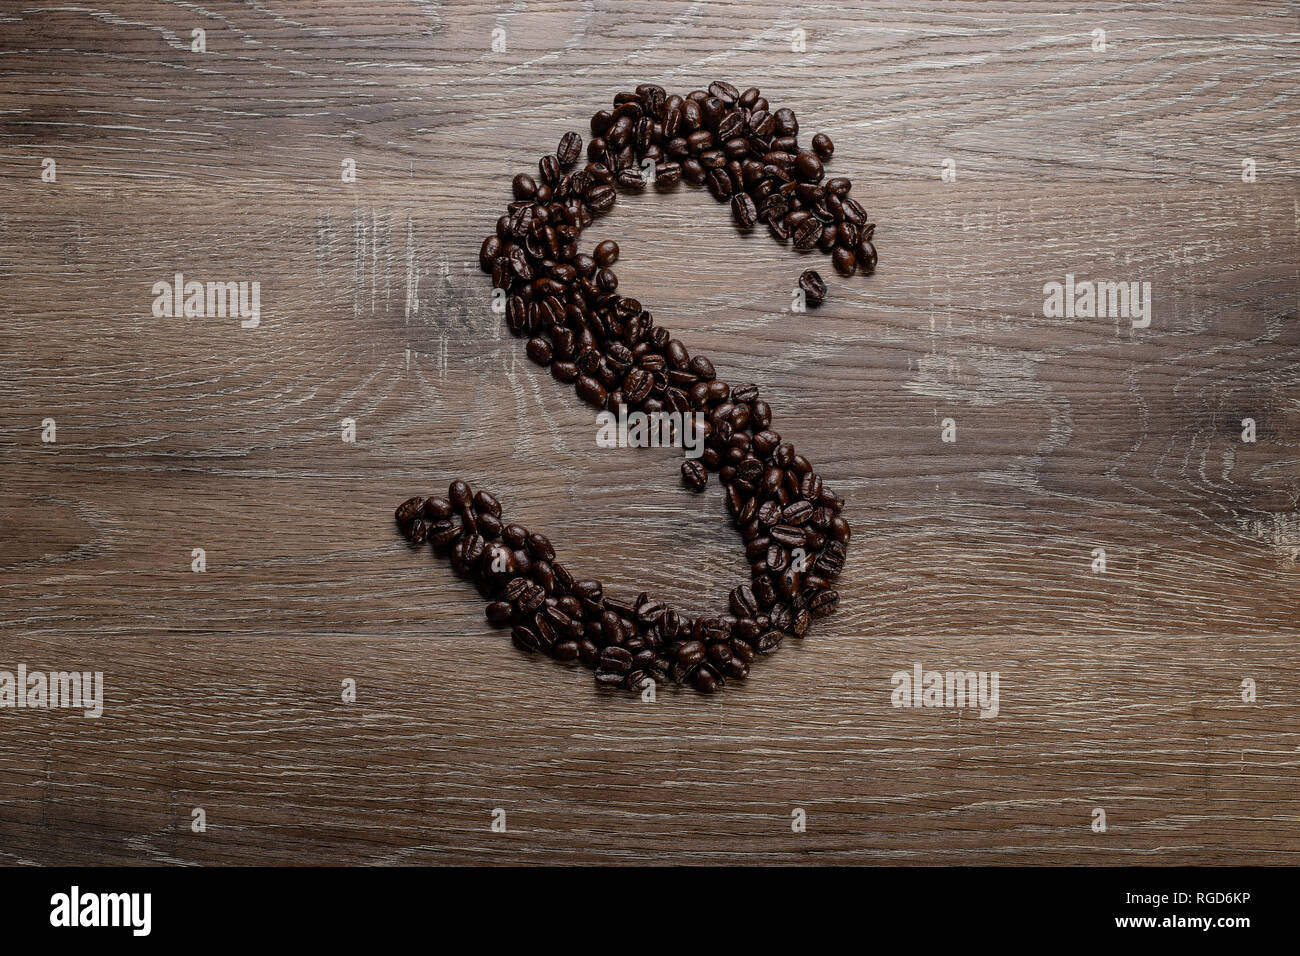 Dark roasted coffee bean arranged on a wooden table in the shape of text alphabet letter S - Stock Image